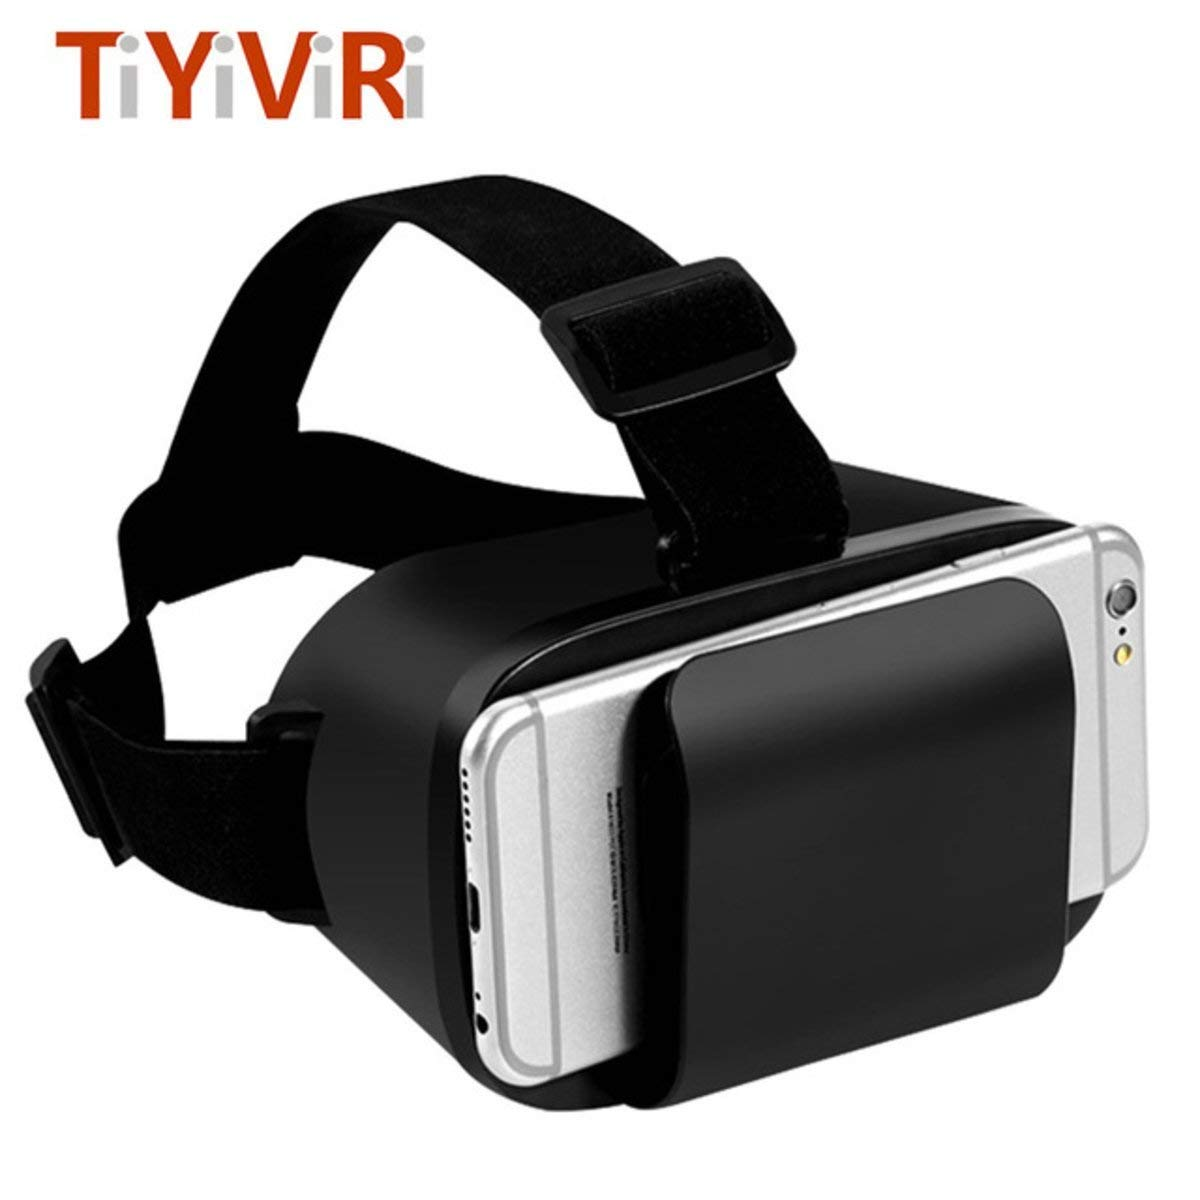 "VR Box 3D Virtual Reality Goggles 360 4.7-6.0"" Smartphone (VR Box 3D Virtual Reality Goggles 360 Panorama Video Goggle Cardboard Headset For 4.7-6.0"" Smartphone Board games 3D Game Movies)"